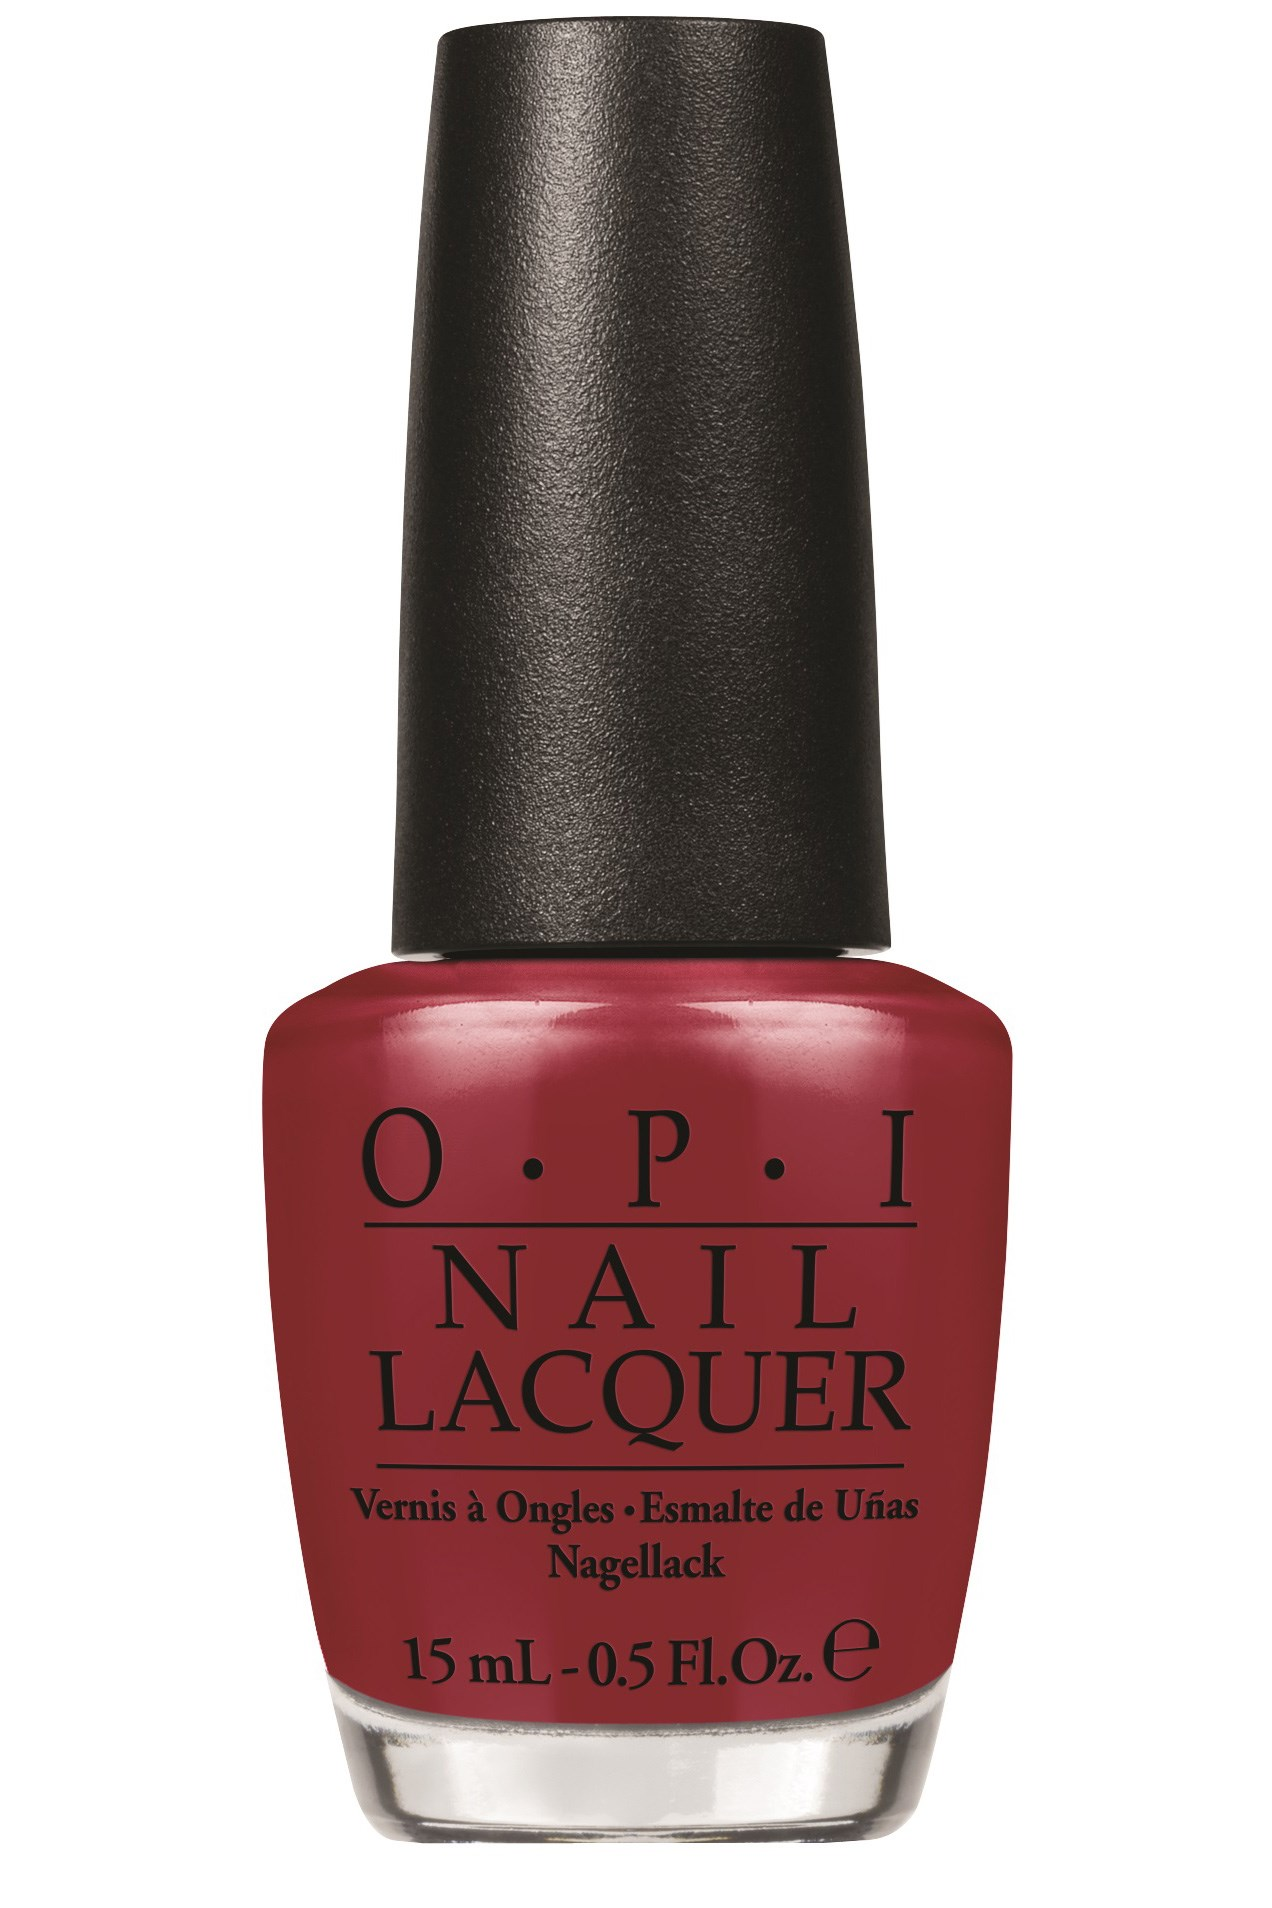 """<p><strong>Genevra - fashion news director </strong></p> <p><em>Nail Lacquer in Malaga Wine, $19.95, OPI, <a href=""""http://www.opi.net.au"""">opi.net.au</a></em></p> <p>It's a classic for toes. And even though mine are mostly hidden in winter boots, it's always good to be prepared!</p>"""